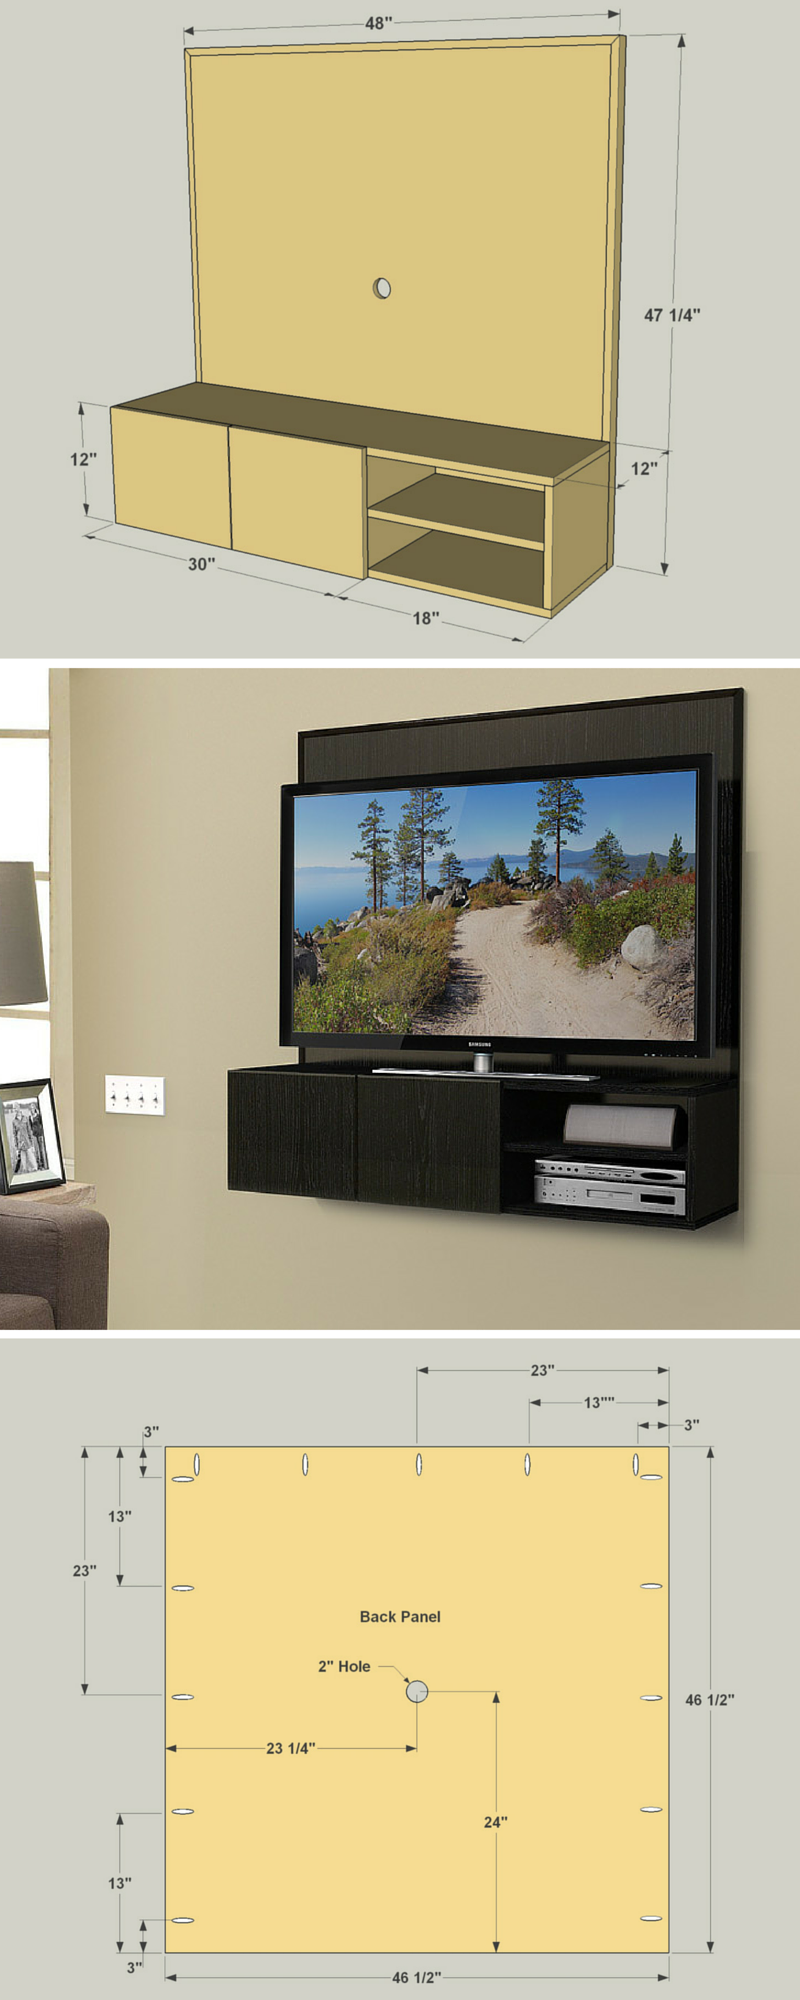 This Wall Mounted Media Cabinet Takes A New Approach To The Traditional U201c Entertainment Center.u201d It Hangs On The Wall, Allowing You To Mount Your TV  To It, ...